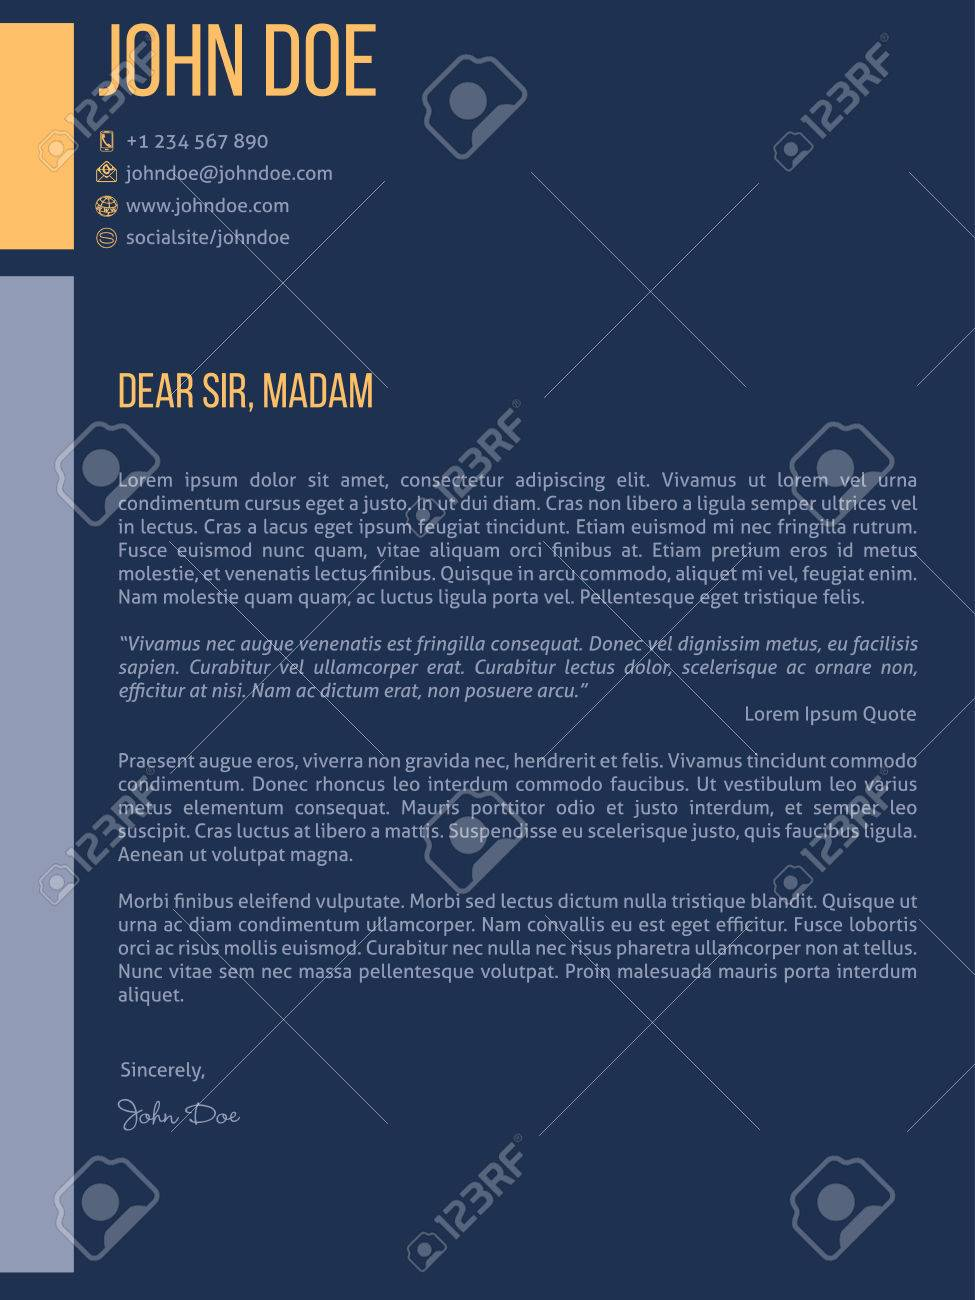 Simplistic cover letter curriculum vitae cv resume template design simplistic cover letter curriculum vitae cv resume template design in dark blue stock vector 43218880 thecheapjerseys Images